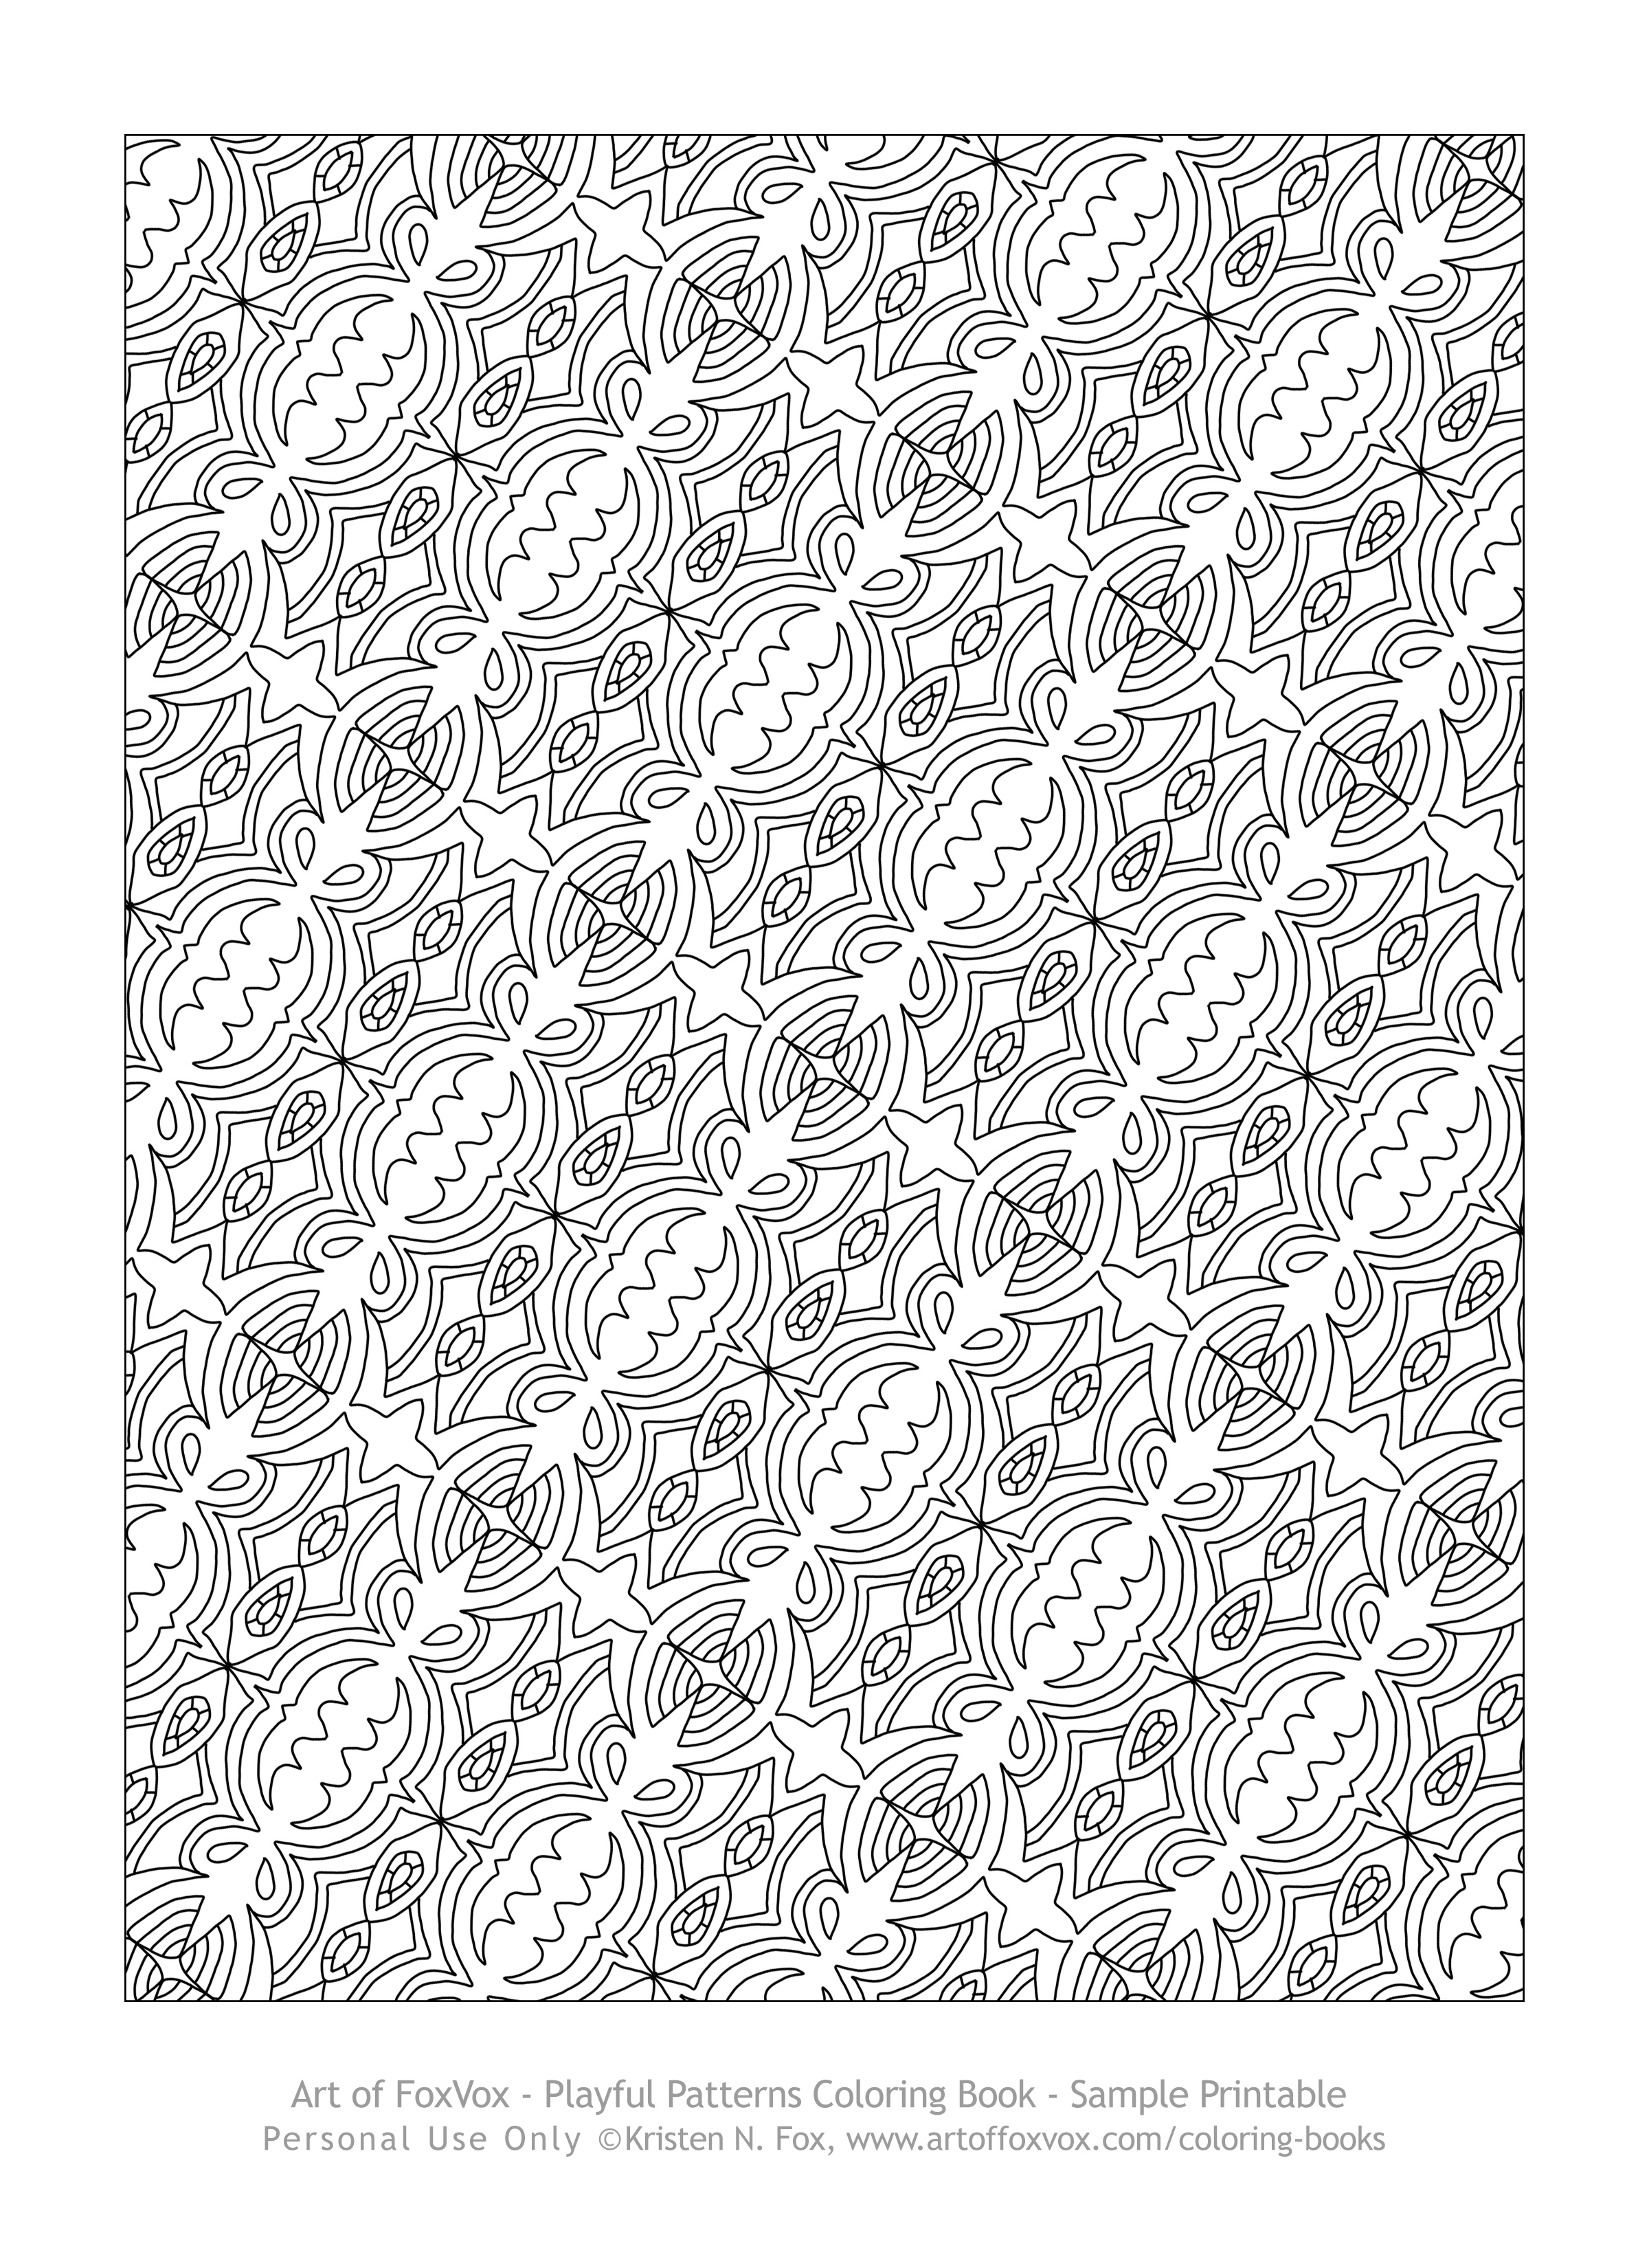 click here to see a sample page of the pleasing patterns travel size coloring book you can print on your printer to color - Coloring Book Patterns